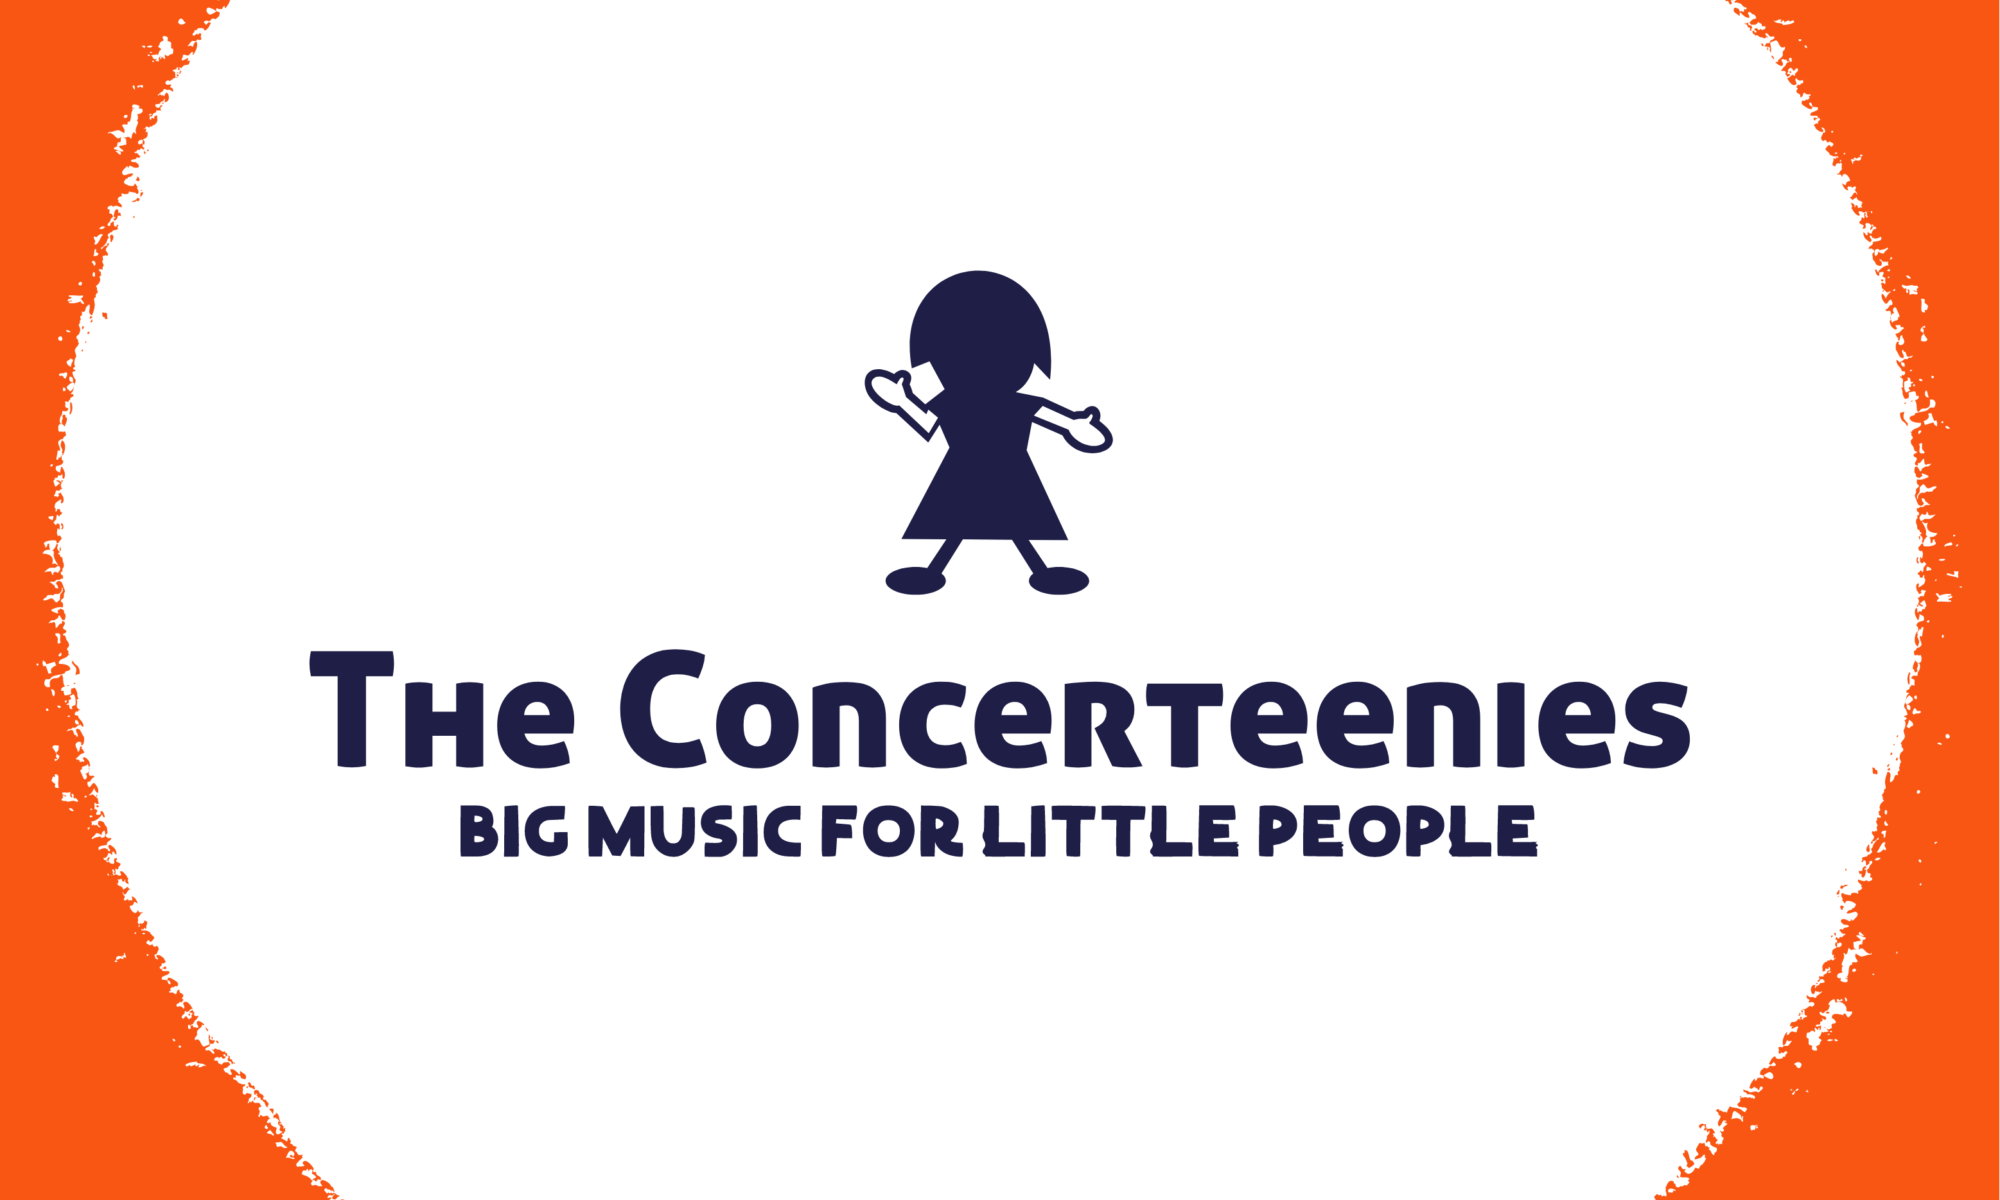 The Concerteenies